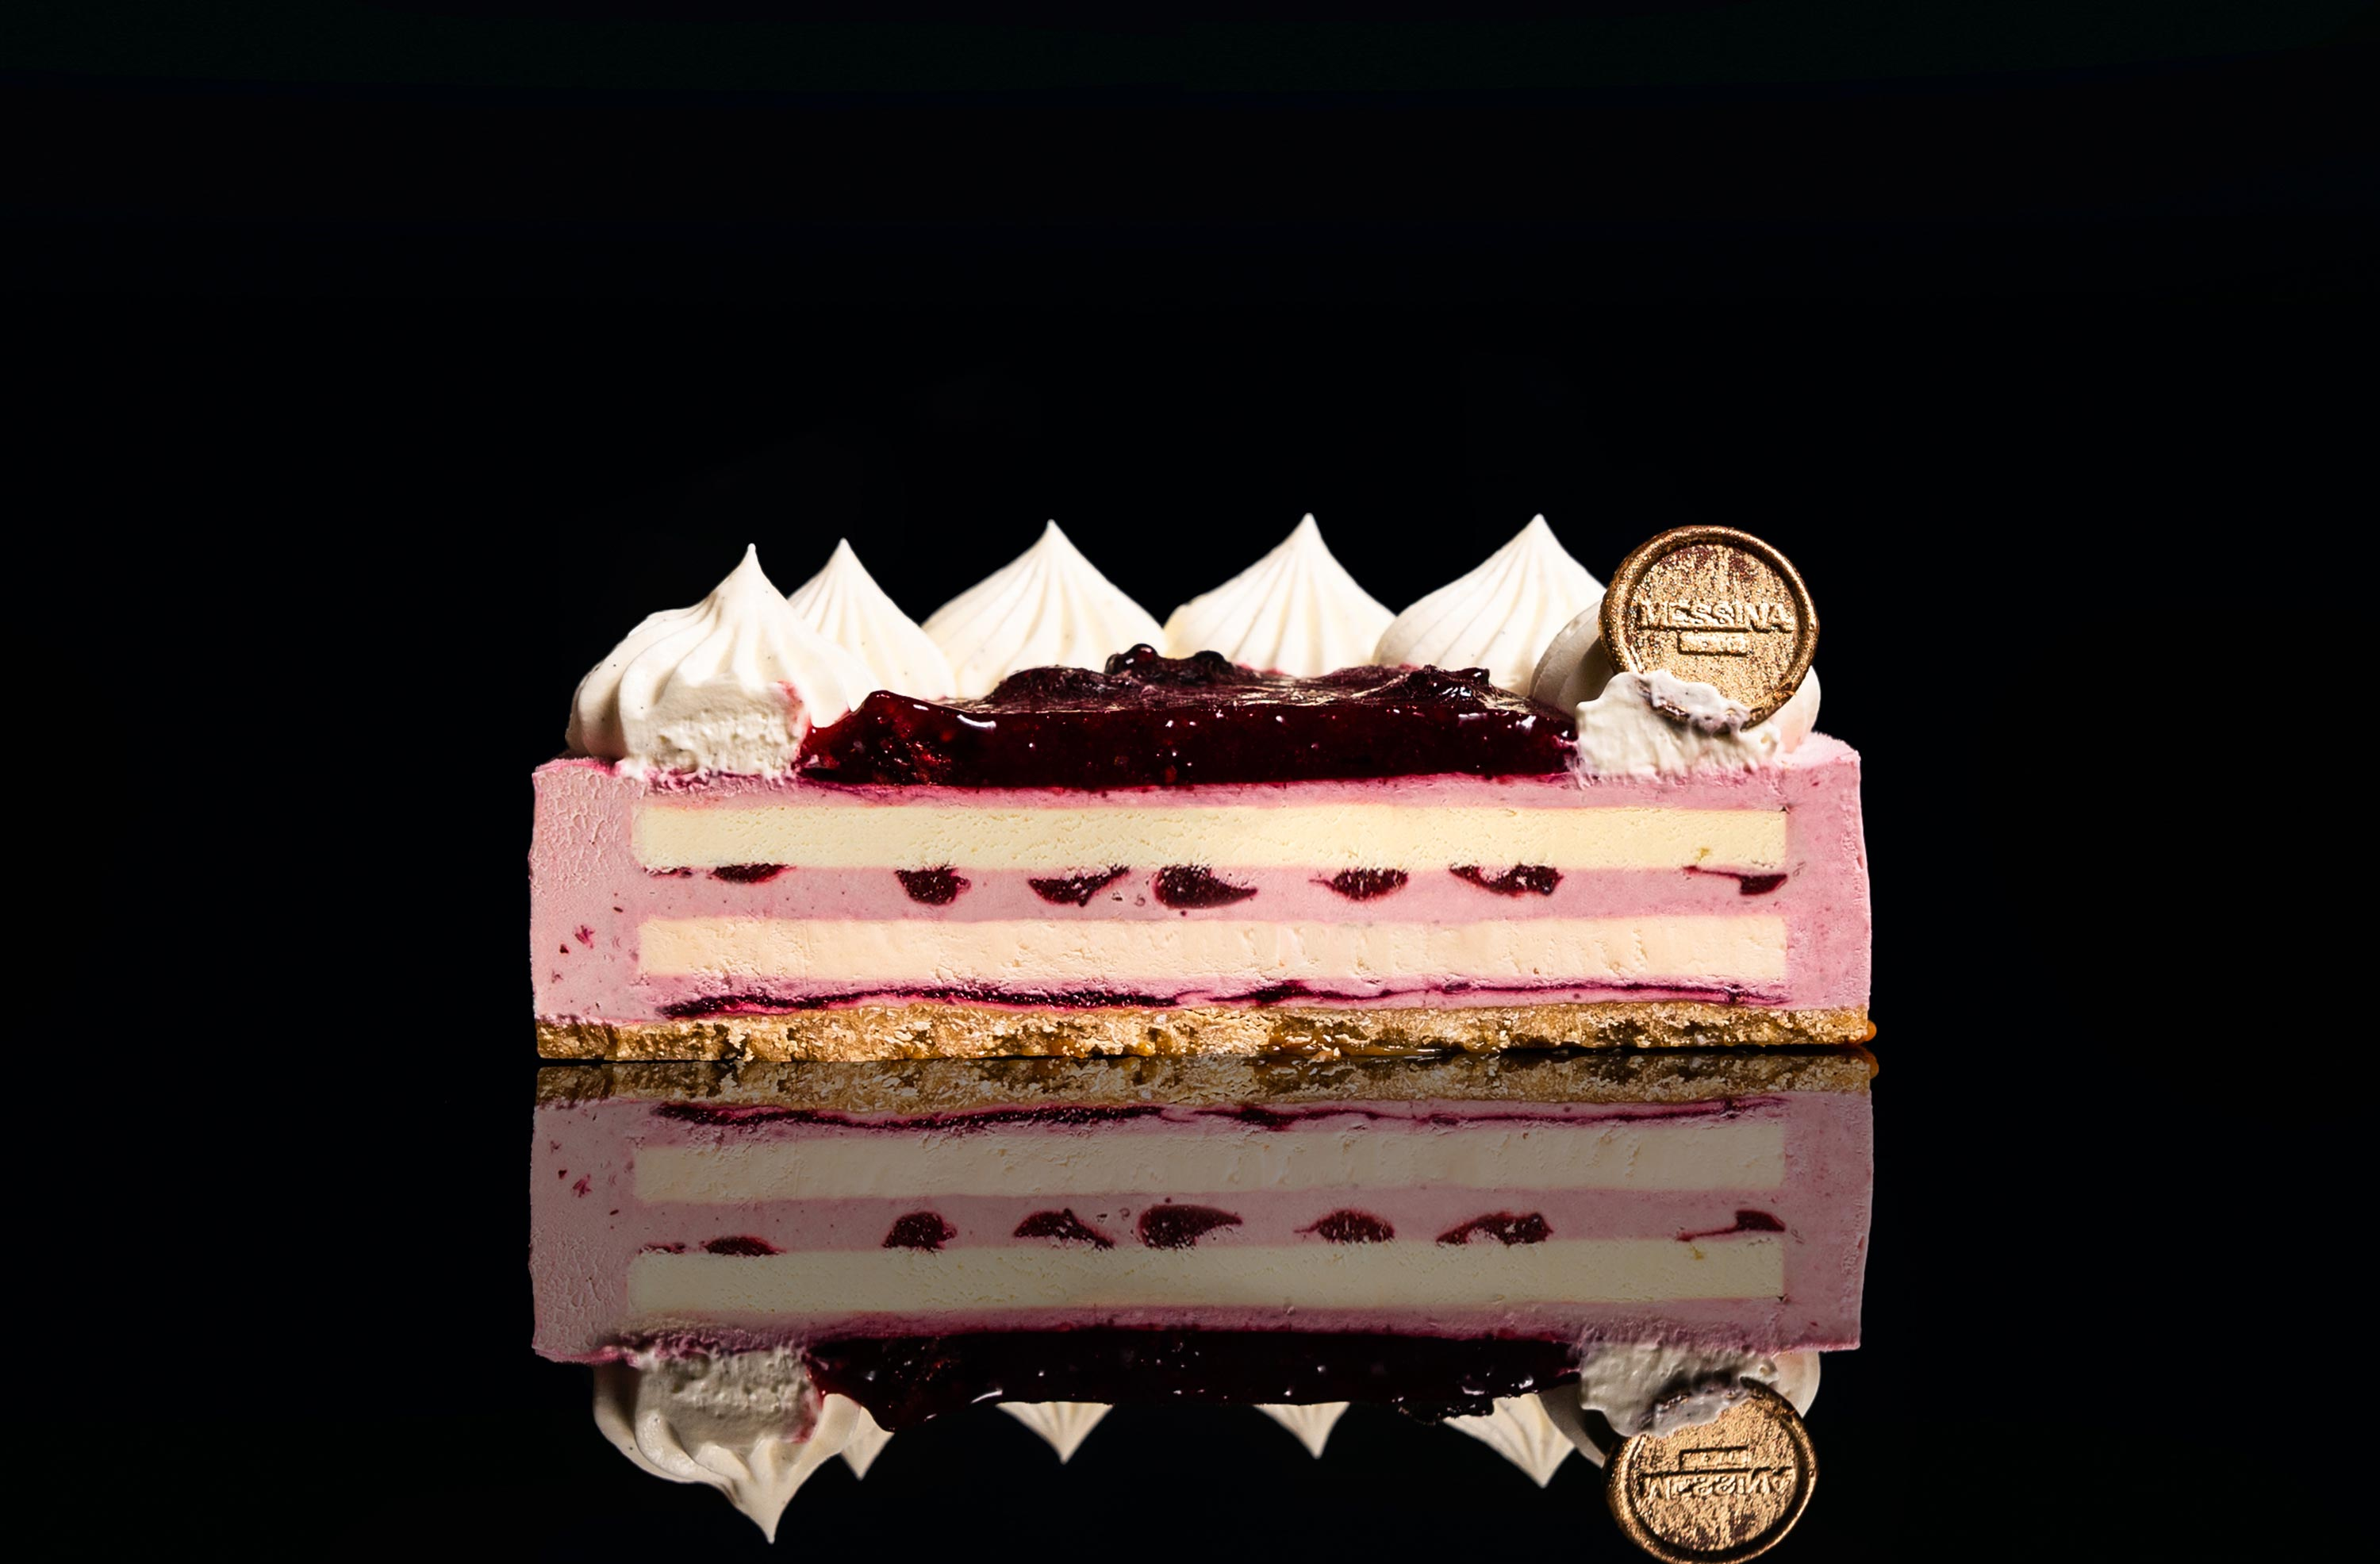 Boysenberry Cheesecake by Gelato Messina